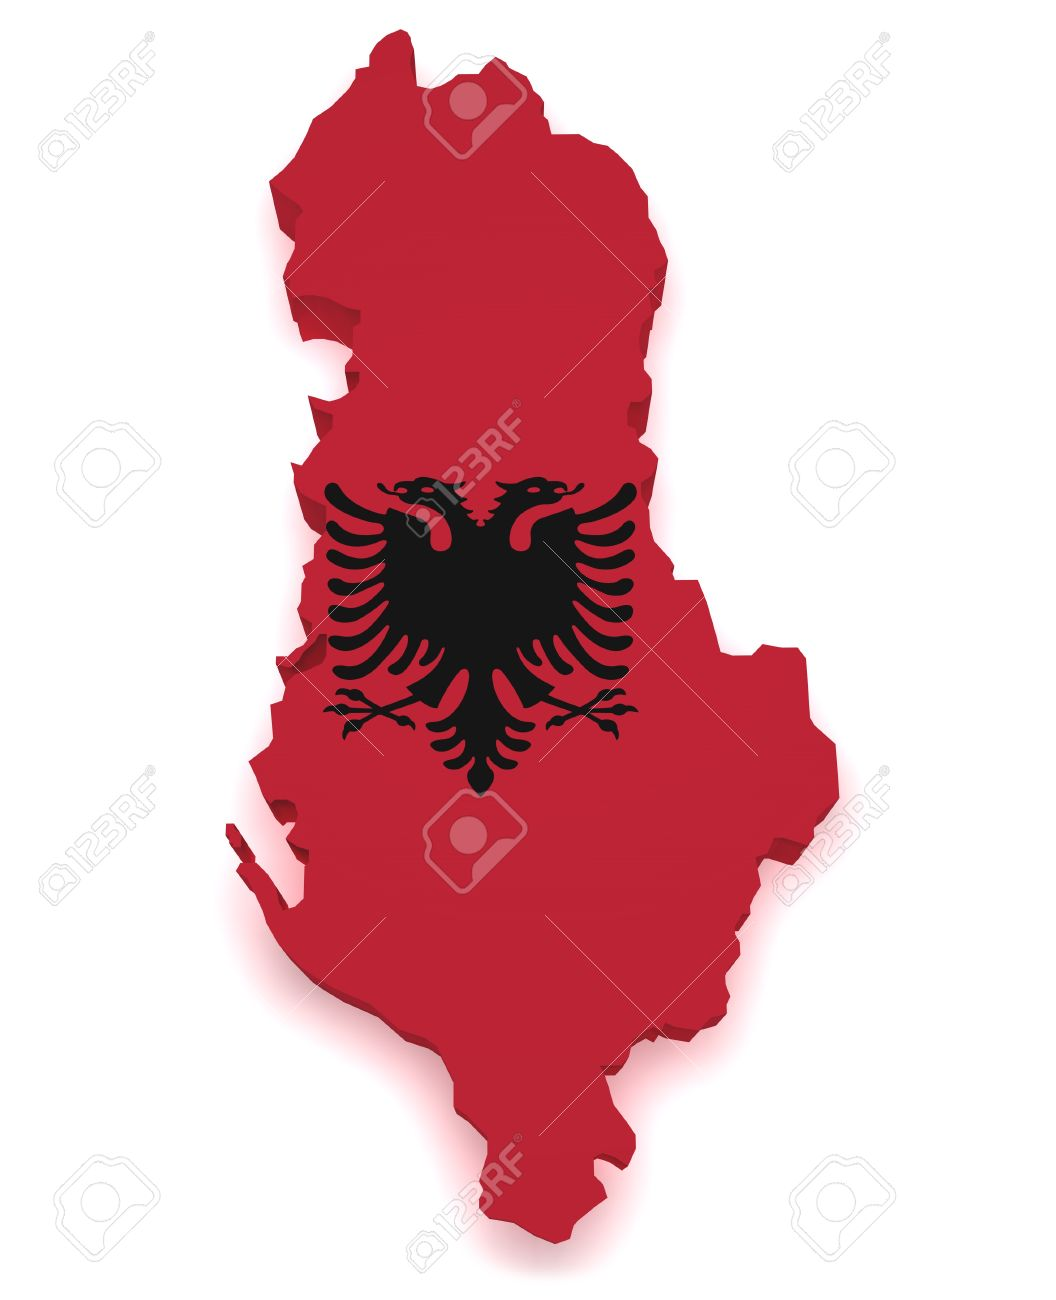 Shape 3d of Albania map with flag isolated on white background Stock Photo - 15385582